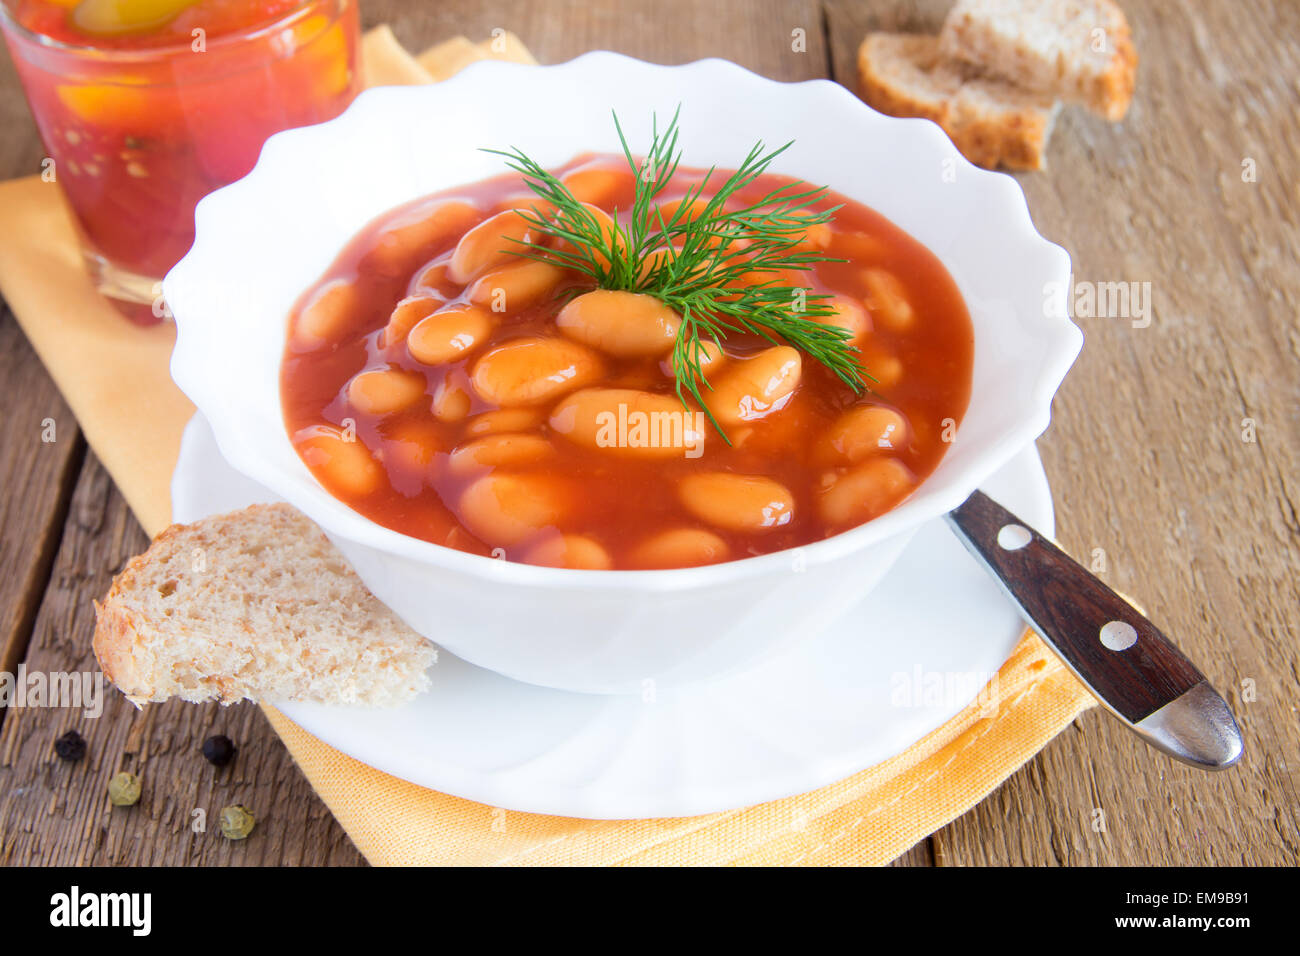 Beans in tomato sause with dill on wooden background, close up horizontal Stock Photo